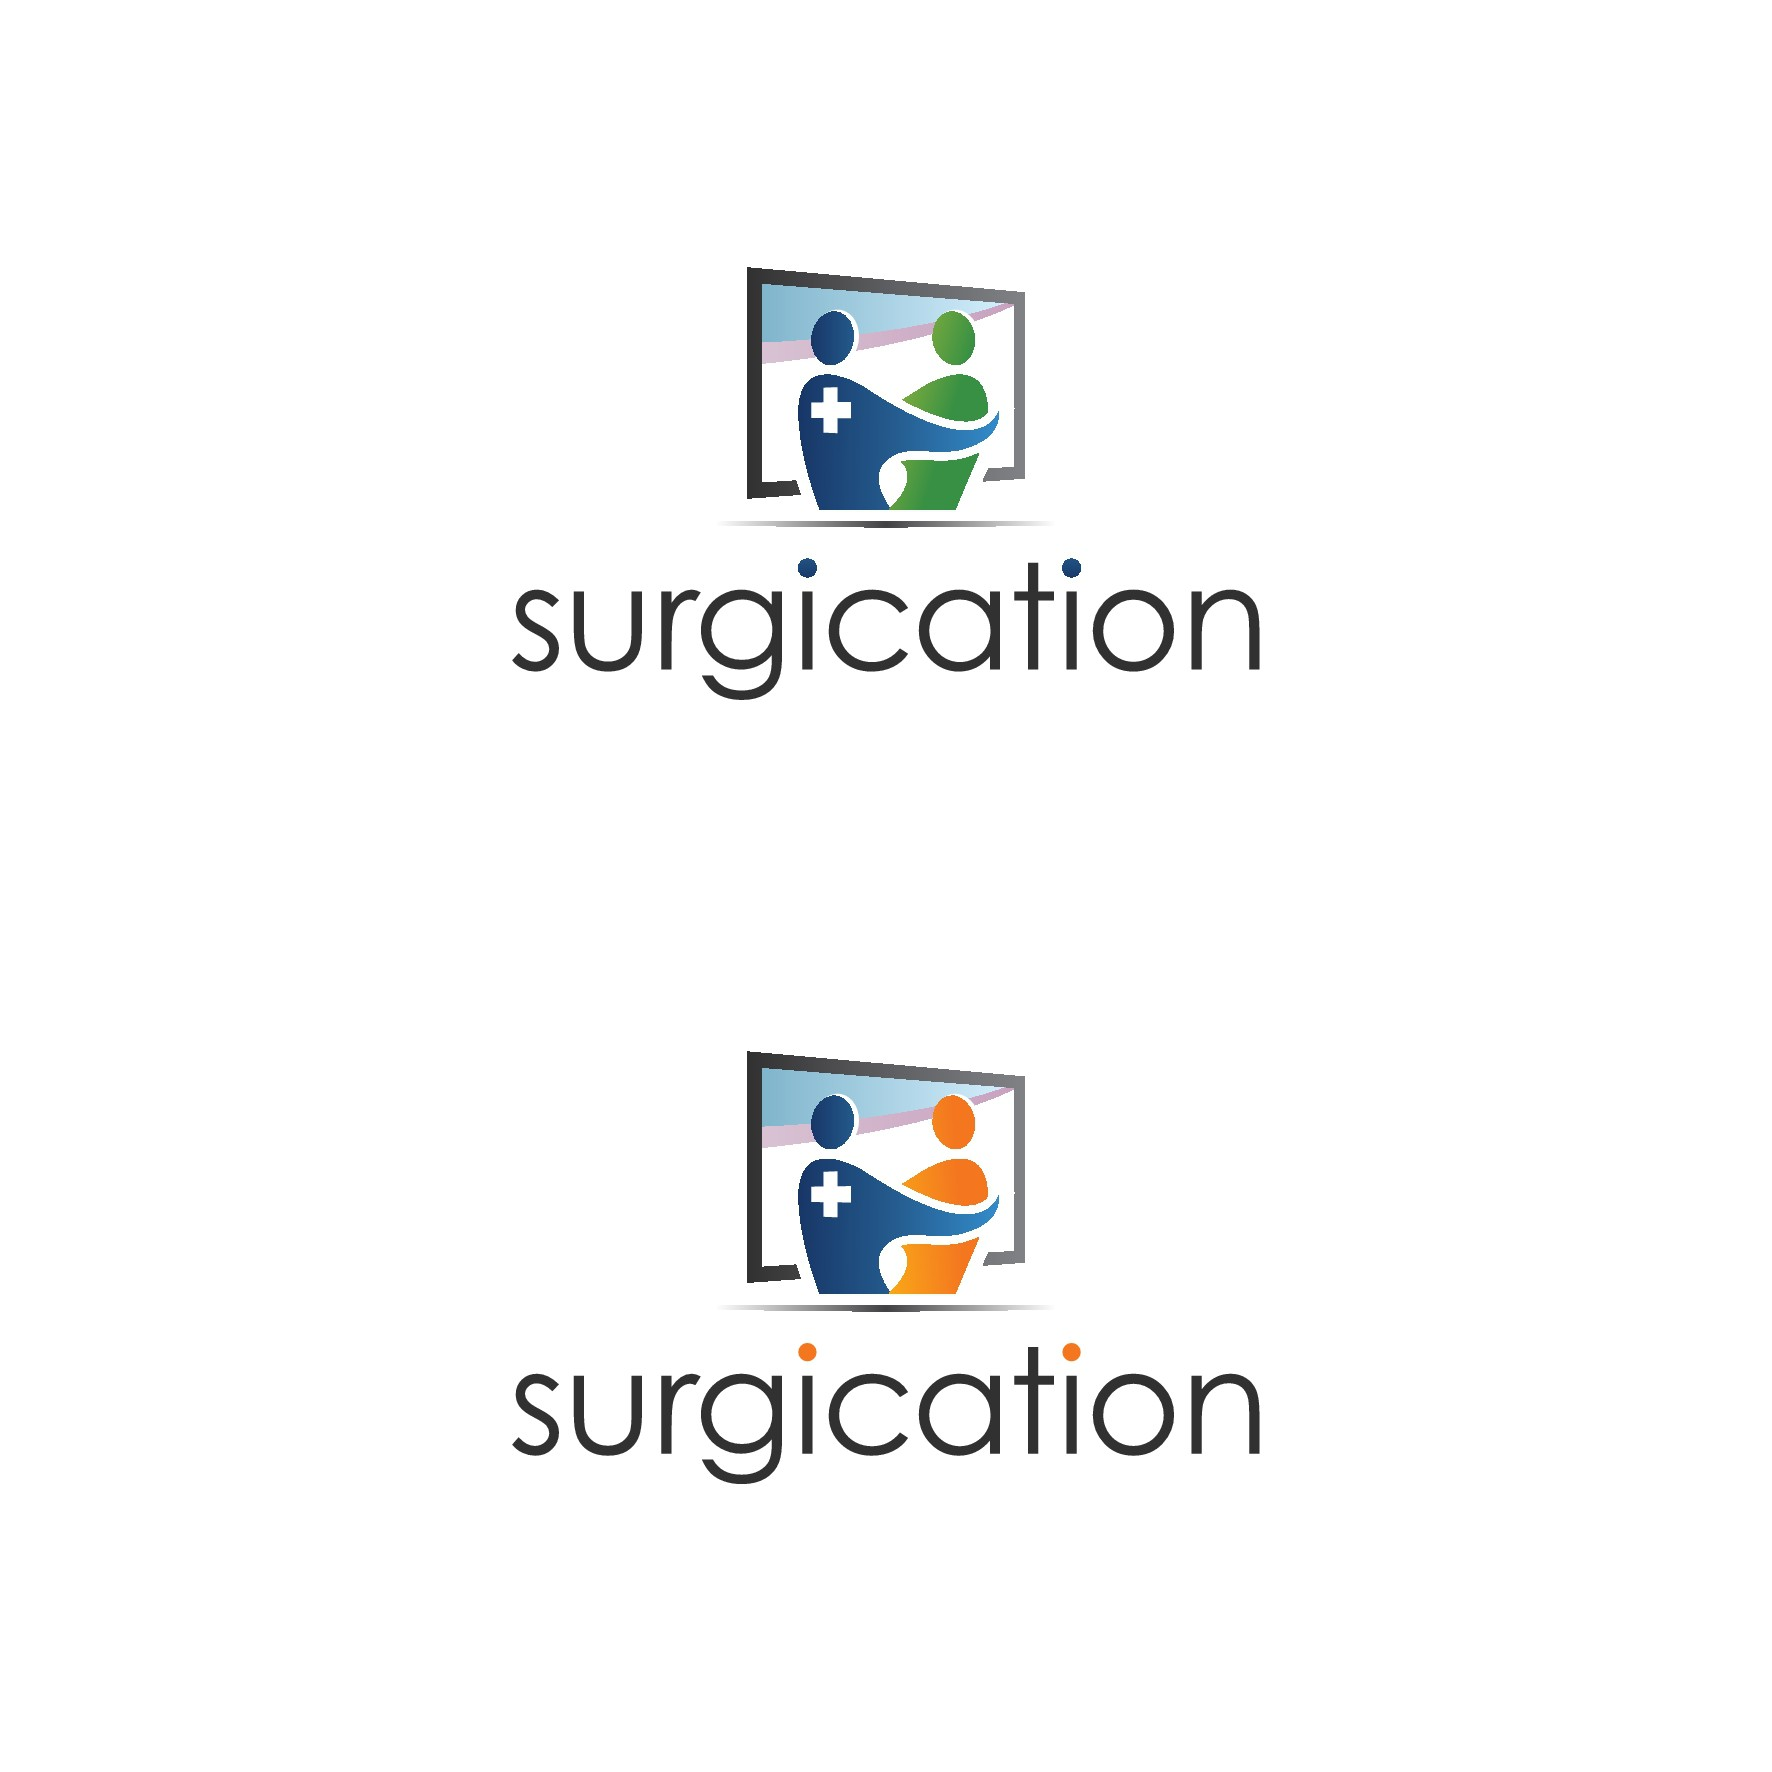 Create a logo for an educational website for surgery patients